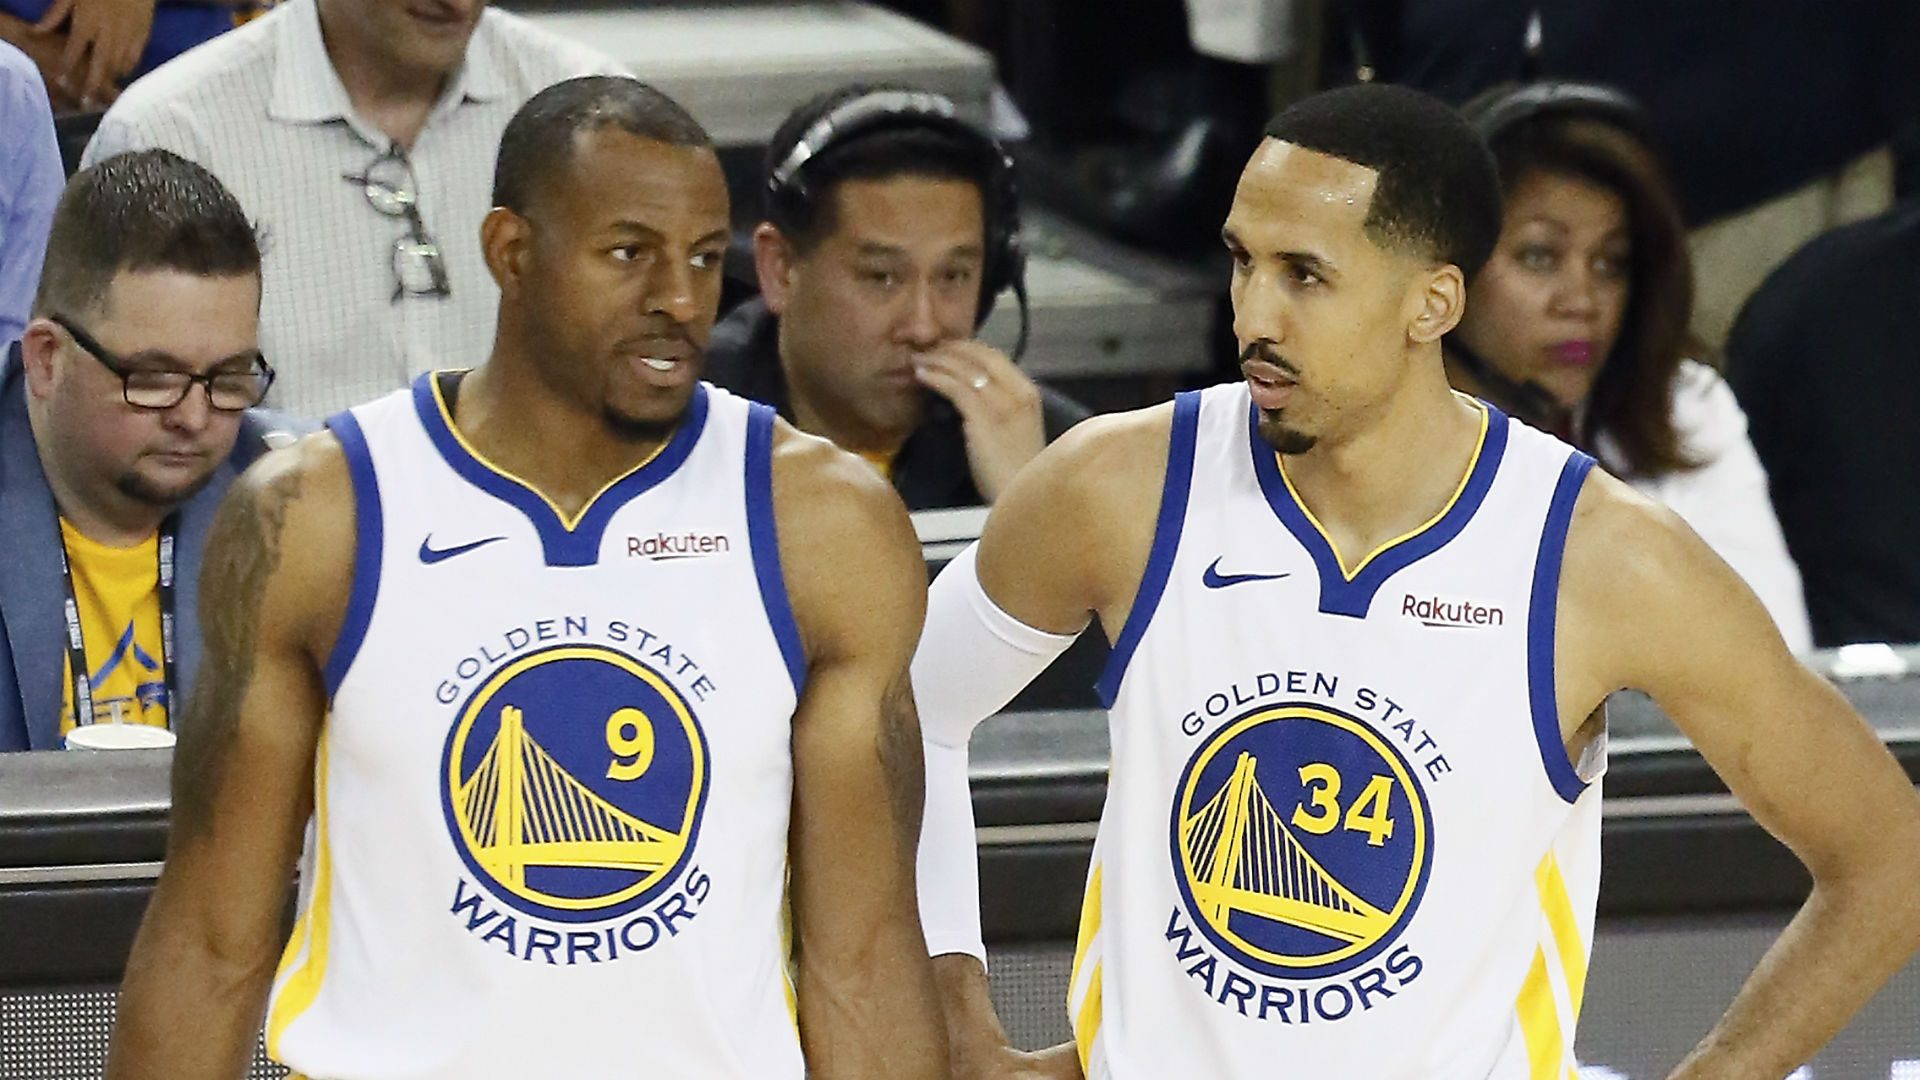 Andre Iguodala and Shaun Livingston